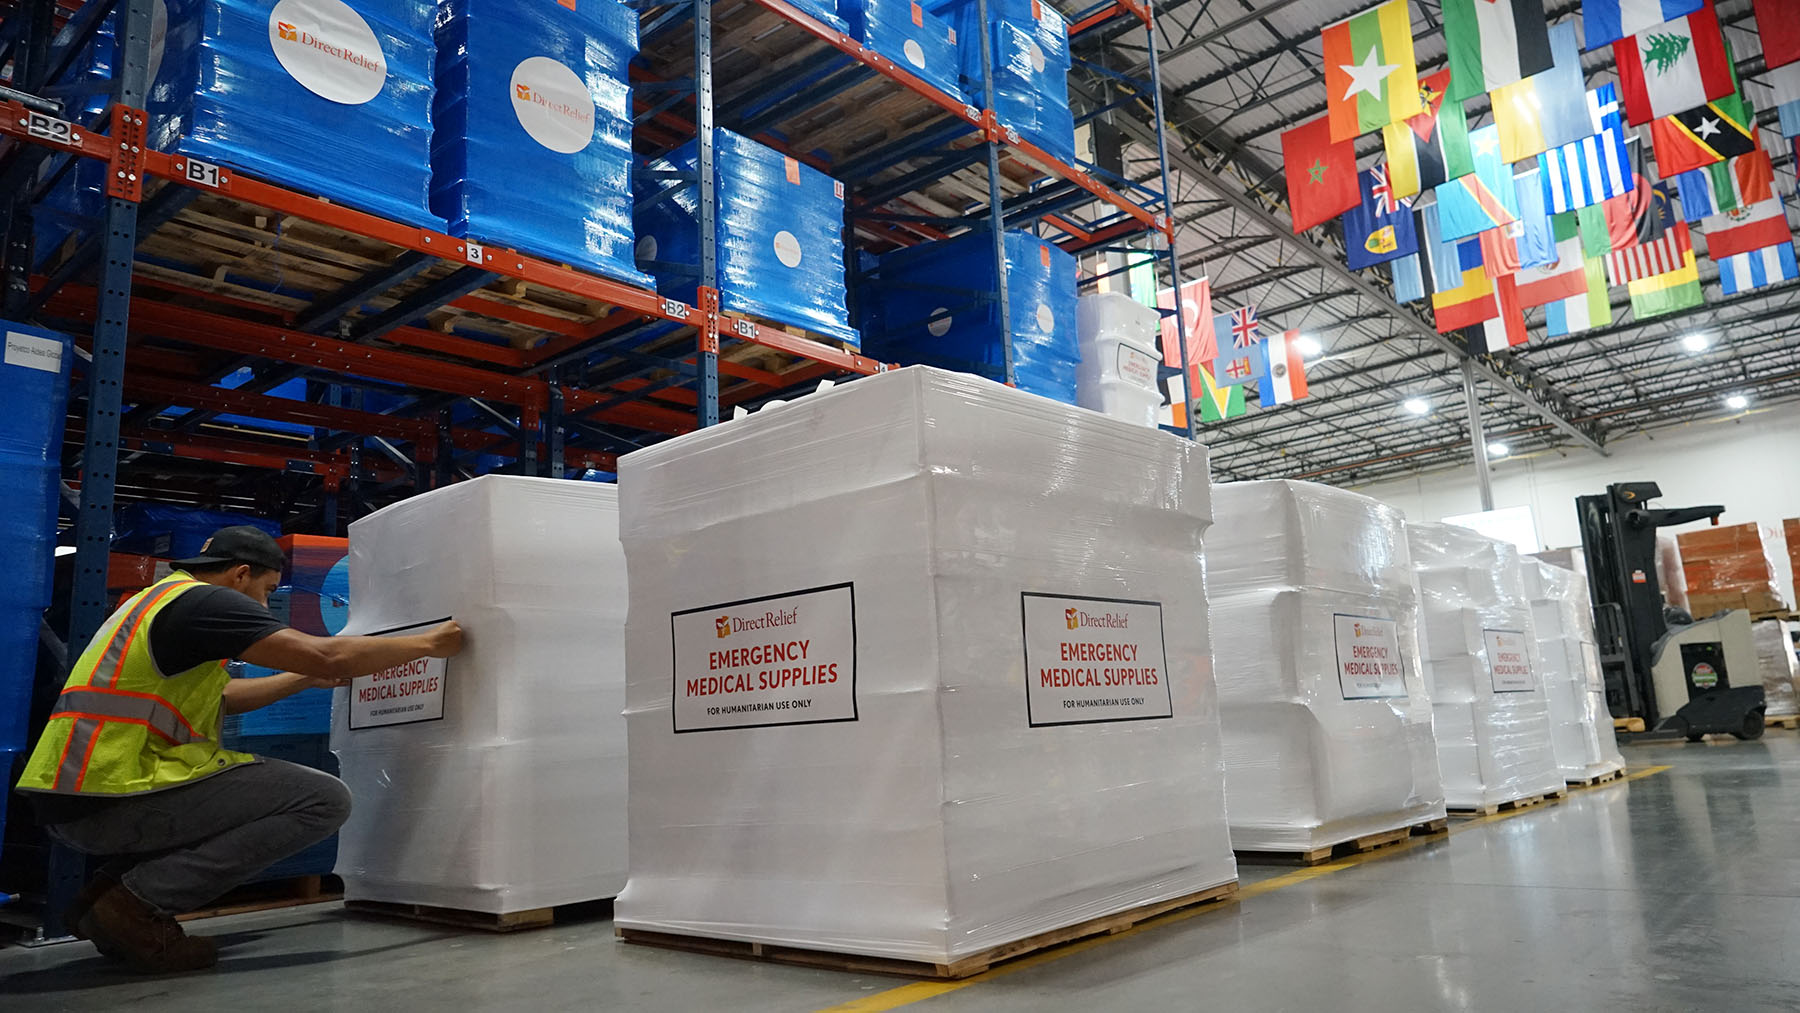 Shipments of essential medical aid, including protective equipment, are staged at Direct Relief's warehouse on July 17, 2019, for transport to the Democratic Republic of Congo, where the second largest outbreak of Ebola is ongoing. The shipment is bound for the country's Ministry of Health, to be used in health facilities across the country, bolstering public health response to the outbreak. On Wednesday, the World Health Organization designated the outbreak a public health emergency of international concern.  (Lara Cooper/Direct Relief)